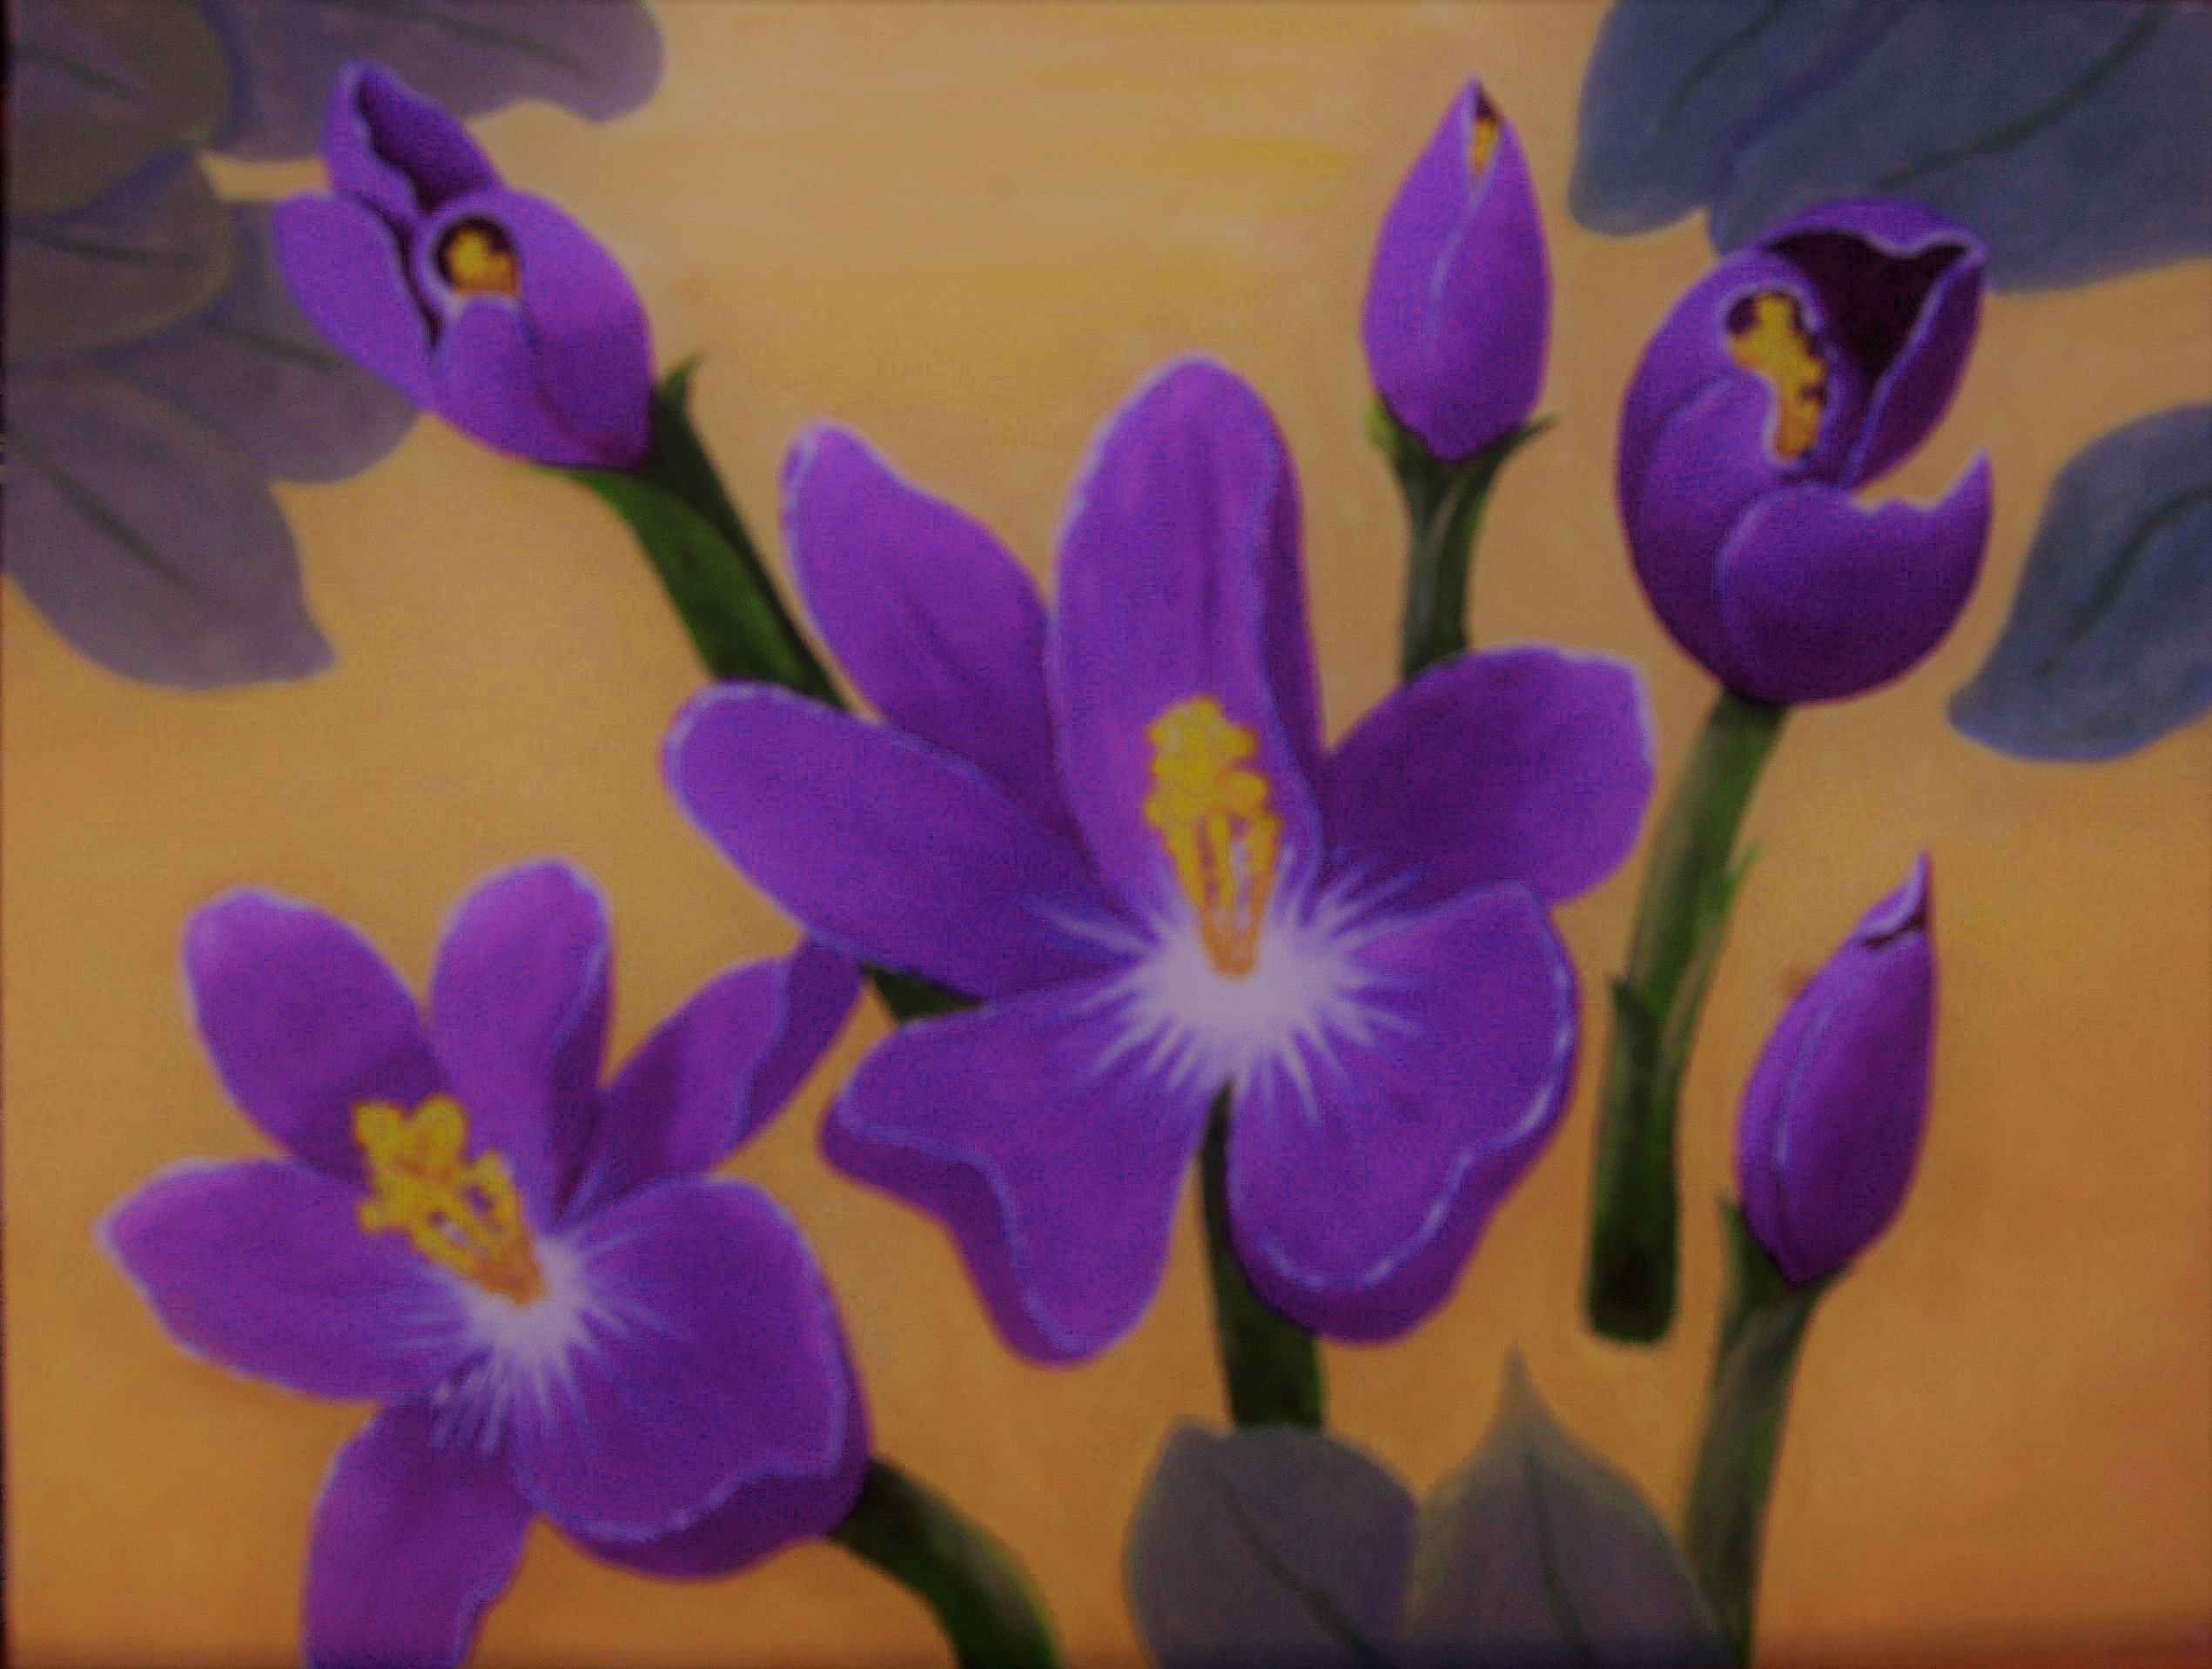 Lora Vannoord: 'crocus flowers', 2019 Oil Painting, Floral. Original oil painting of purple crocus flowers with a very light yellow ochra background that is close to yellow but mellow.  Real wood frame included. ...